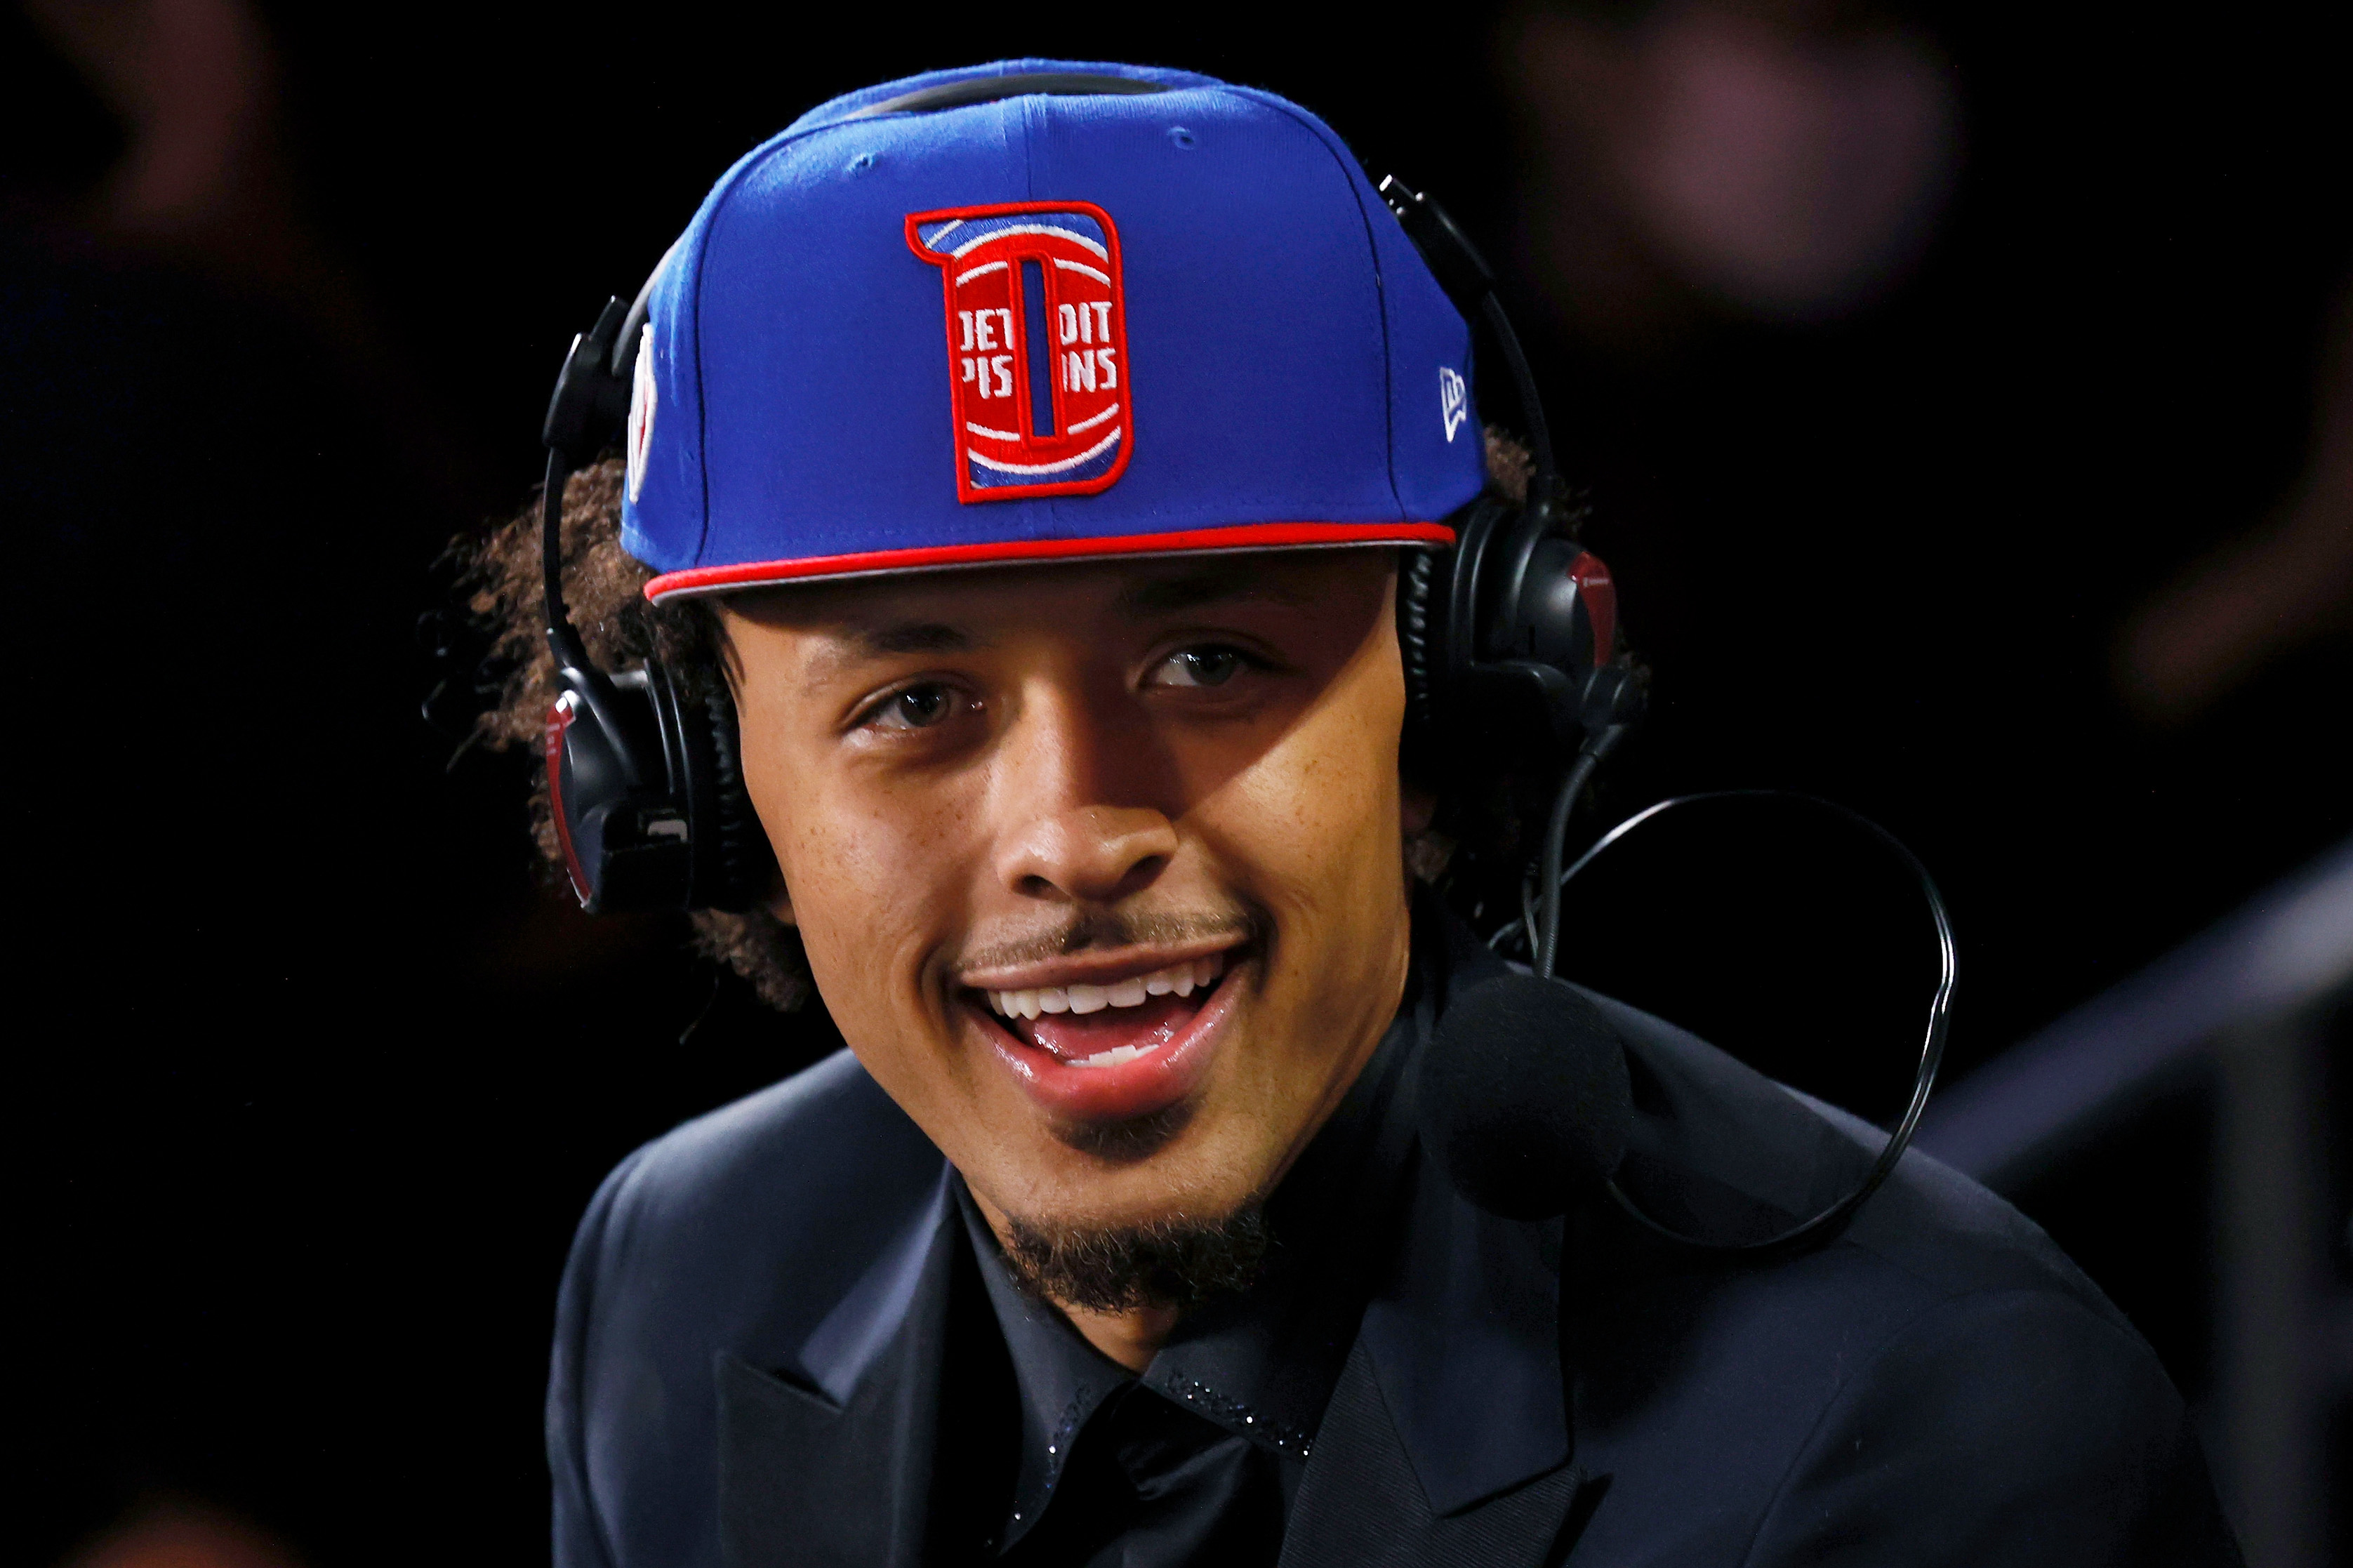 Cade Cunningham is interviewed after being drafted by the Detroit Pistons during the 2021 NBA Draft at the Barclays Center on July 29, 2021 in New York City.